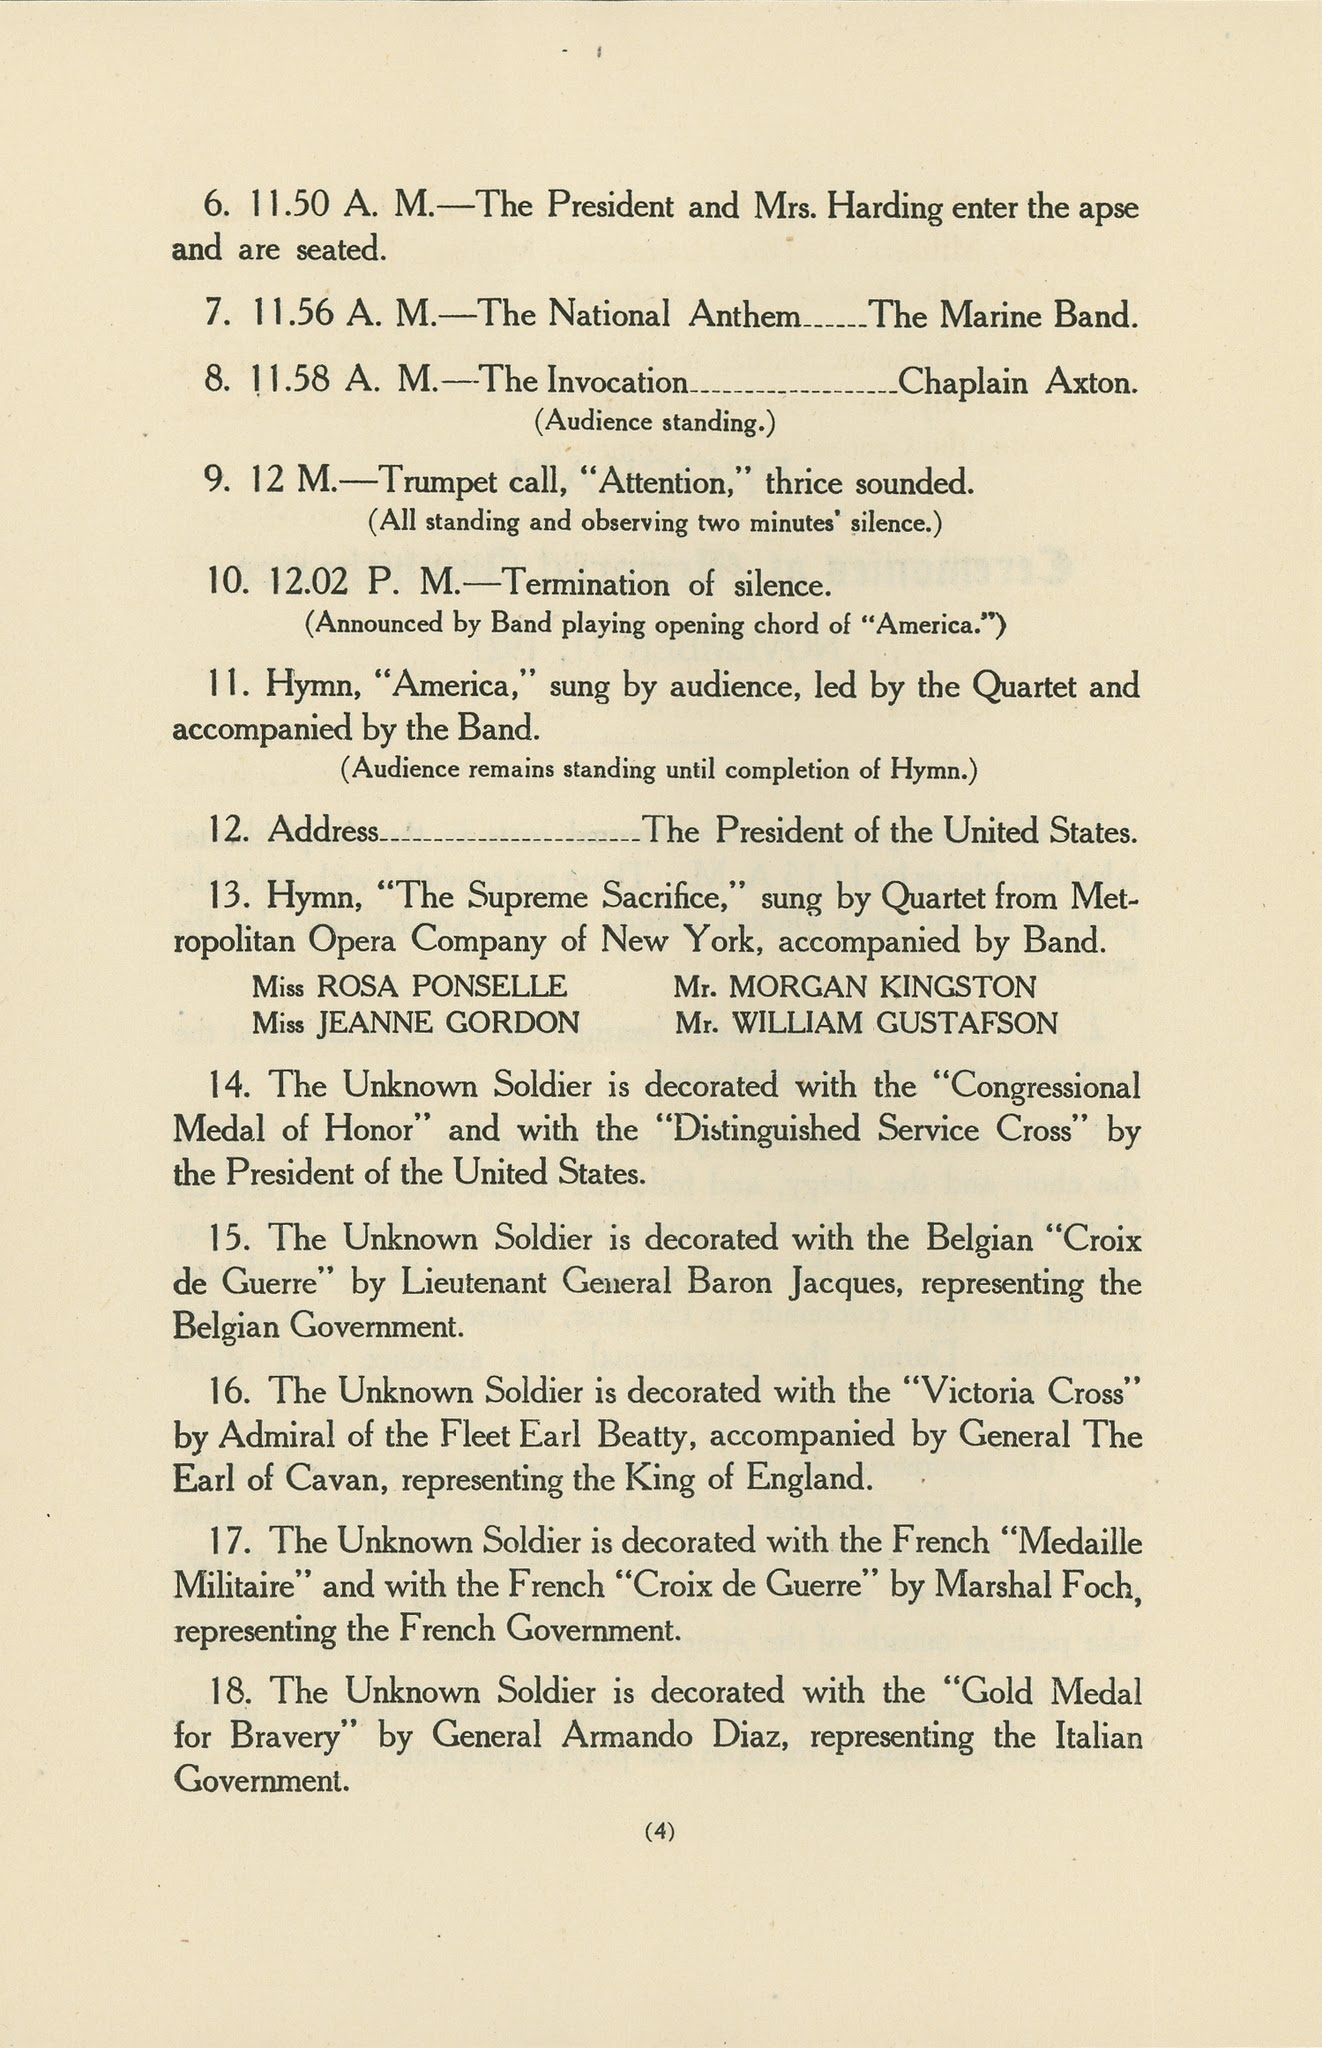 Photo: Program of the 1921 interment of the World War I Unknown Soldier, November 11, 1921.